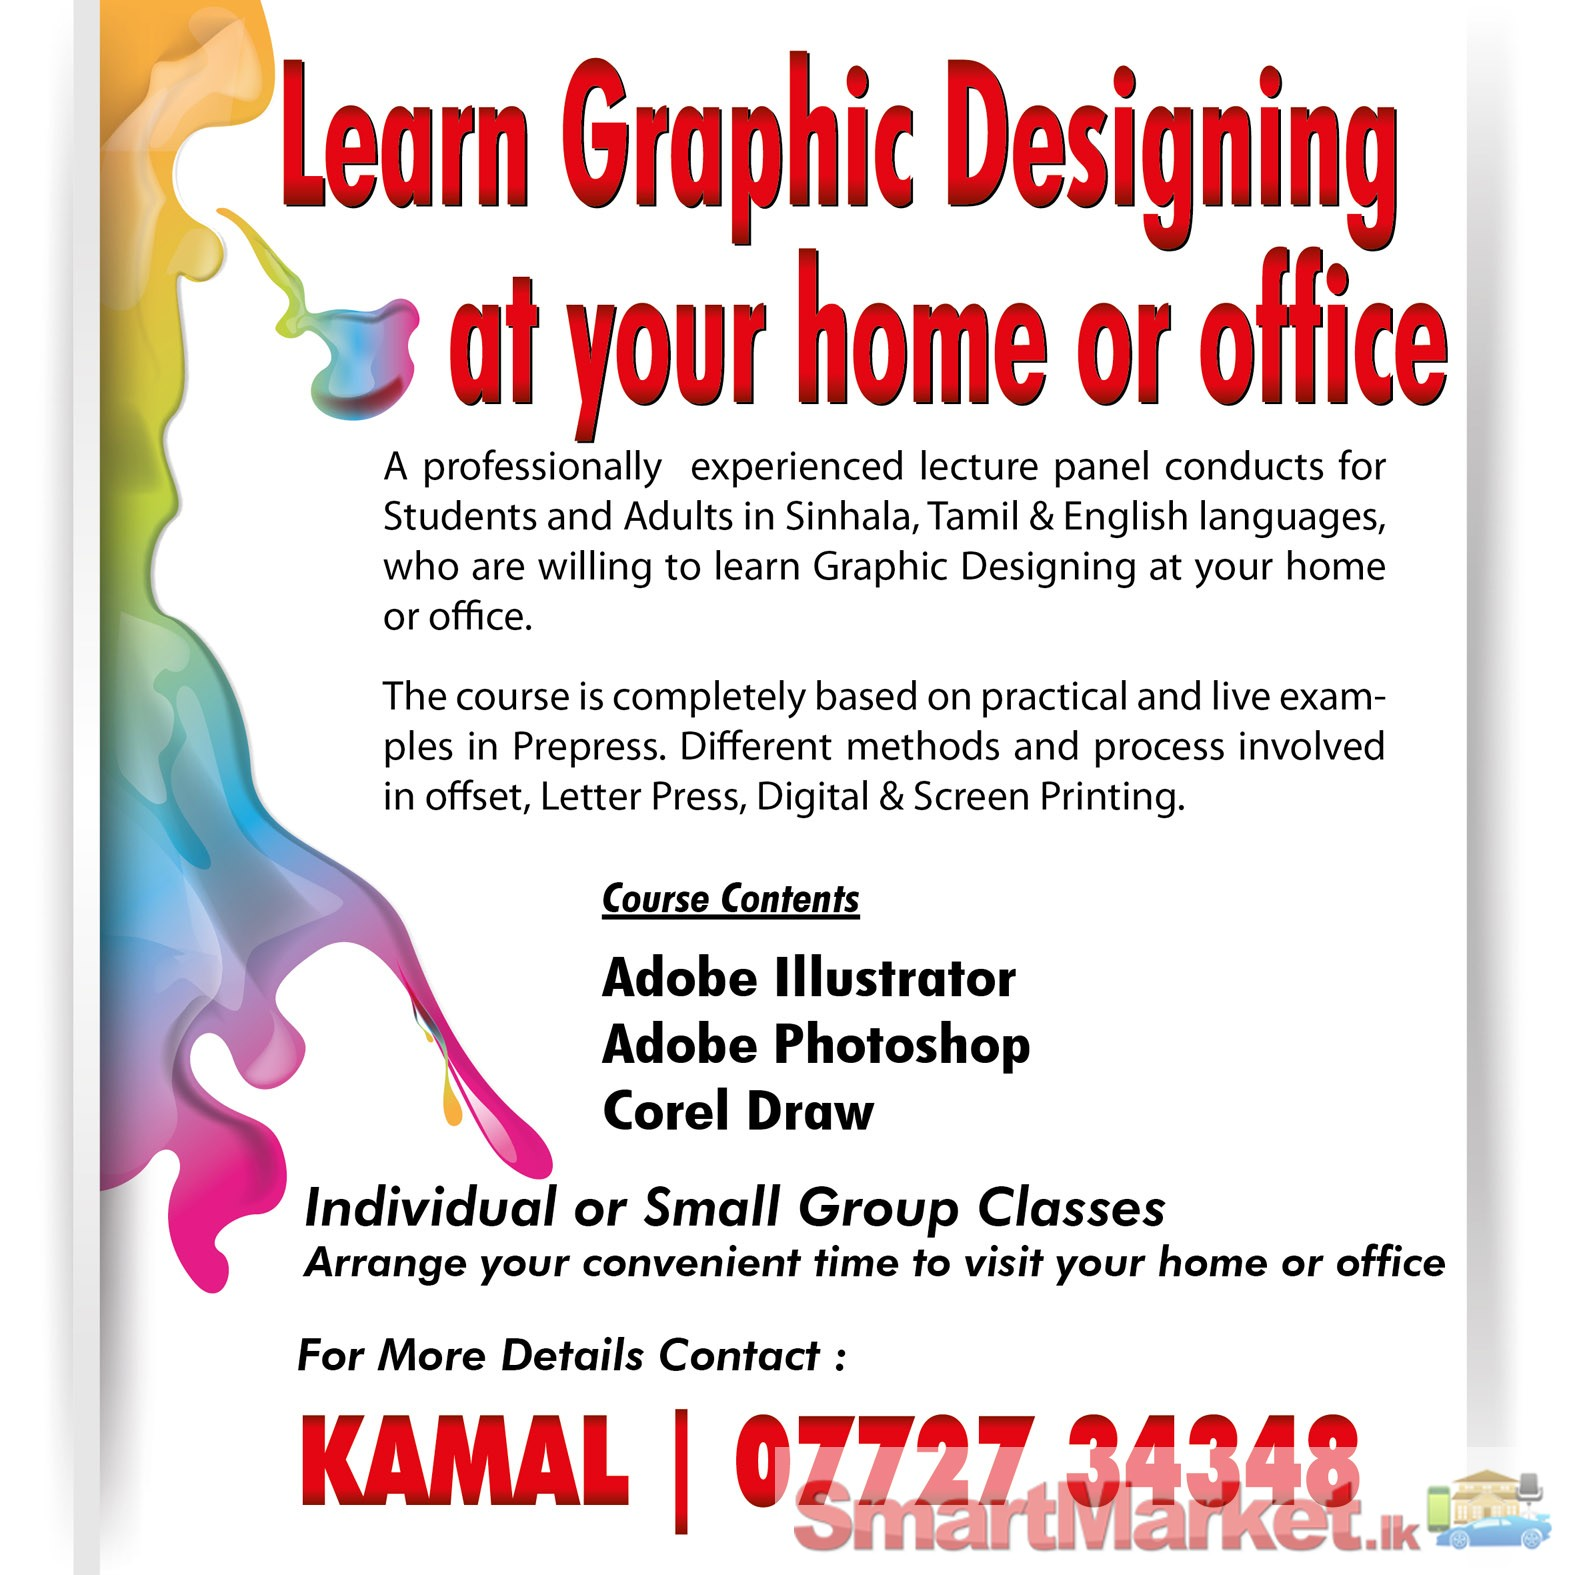 Graphic Designing Class Home Visit Offered In Colombo Smartmarket Lk